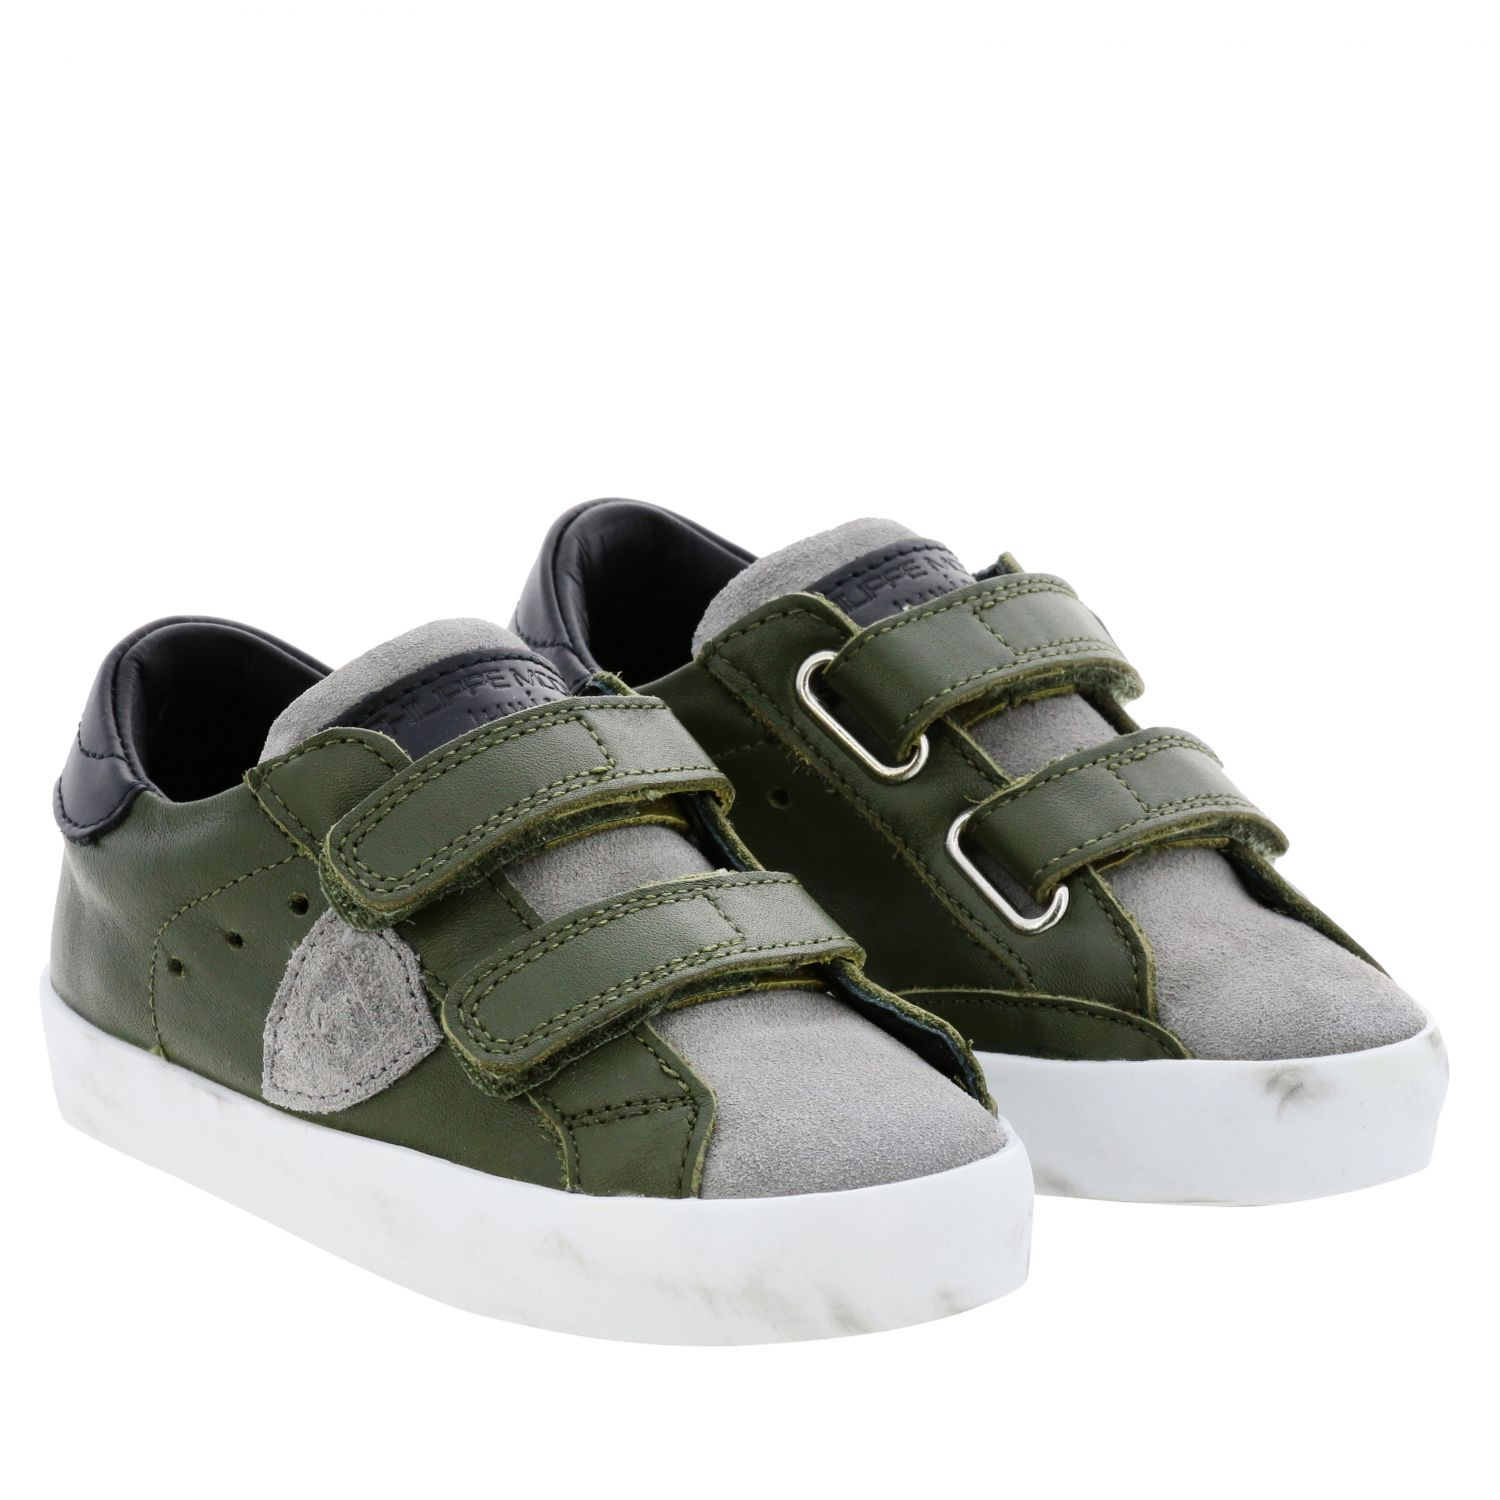 Shoes kids Philippe Model green 2